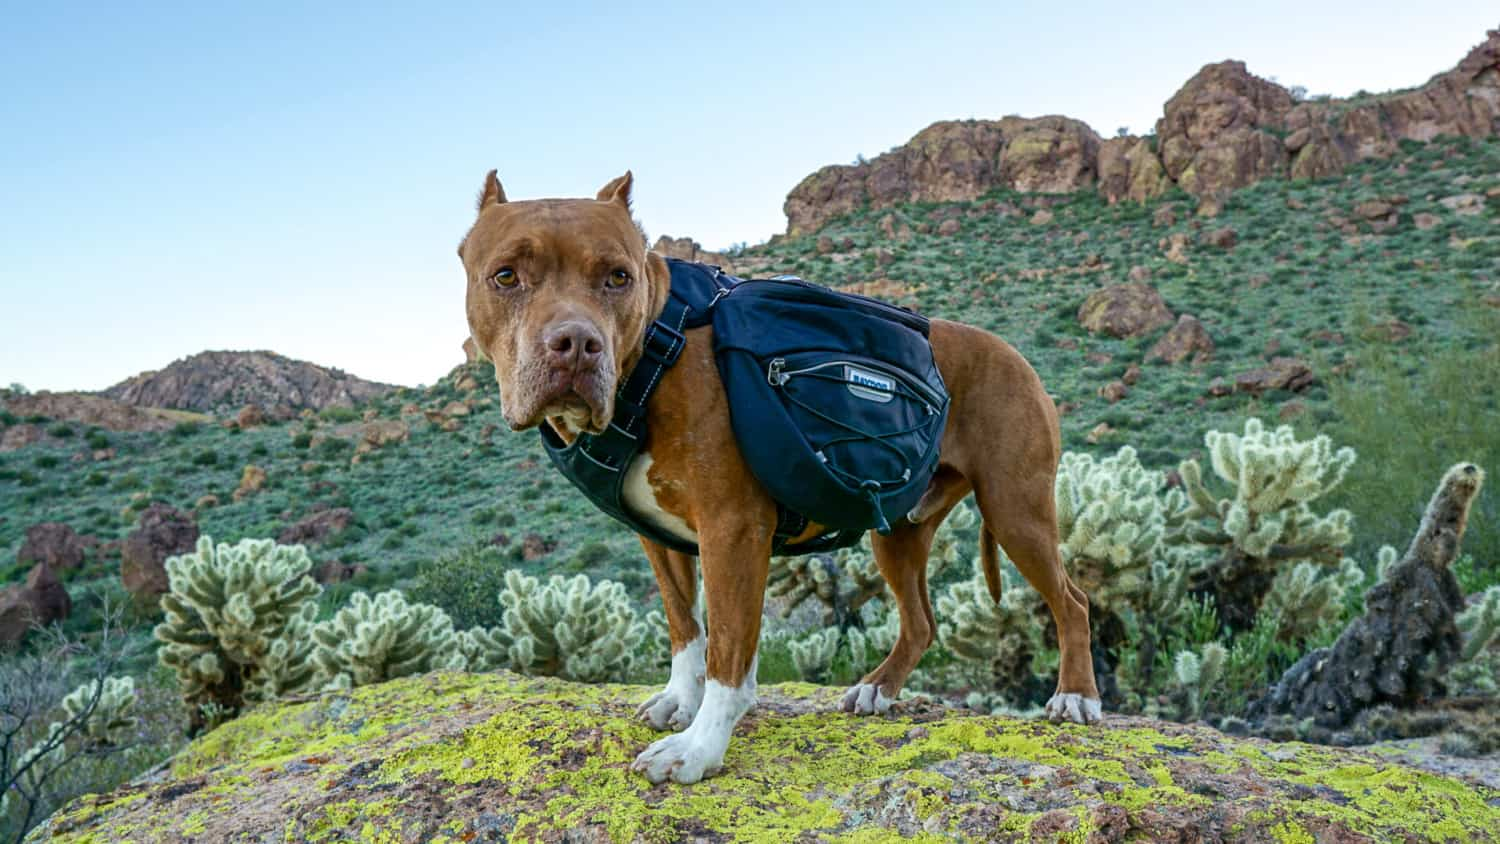 Hercules the pitbull dogs posing in a Bay Dog backpack with mountains in the background